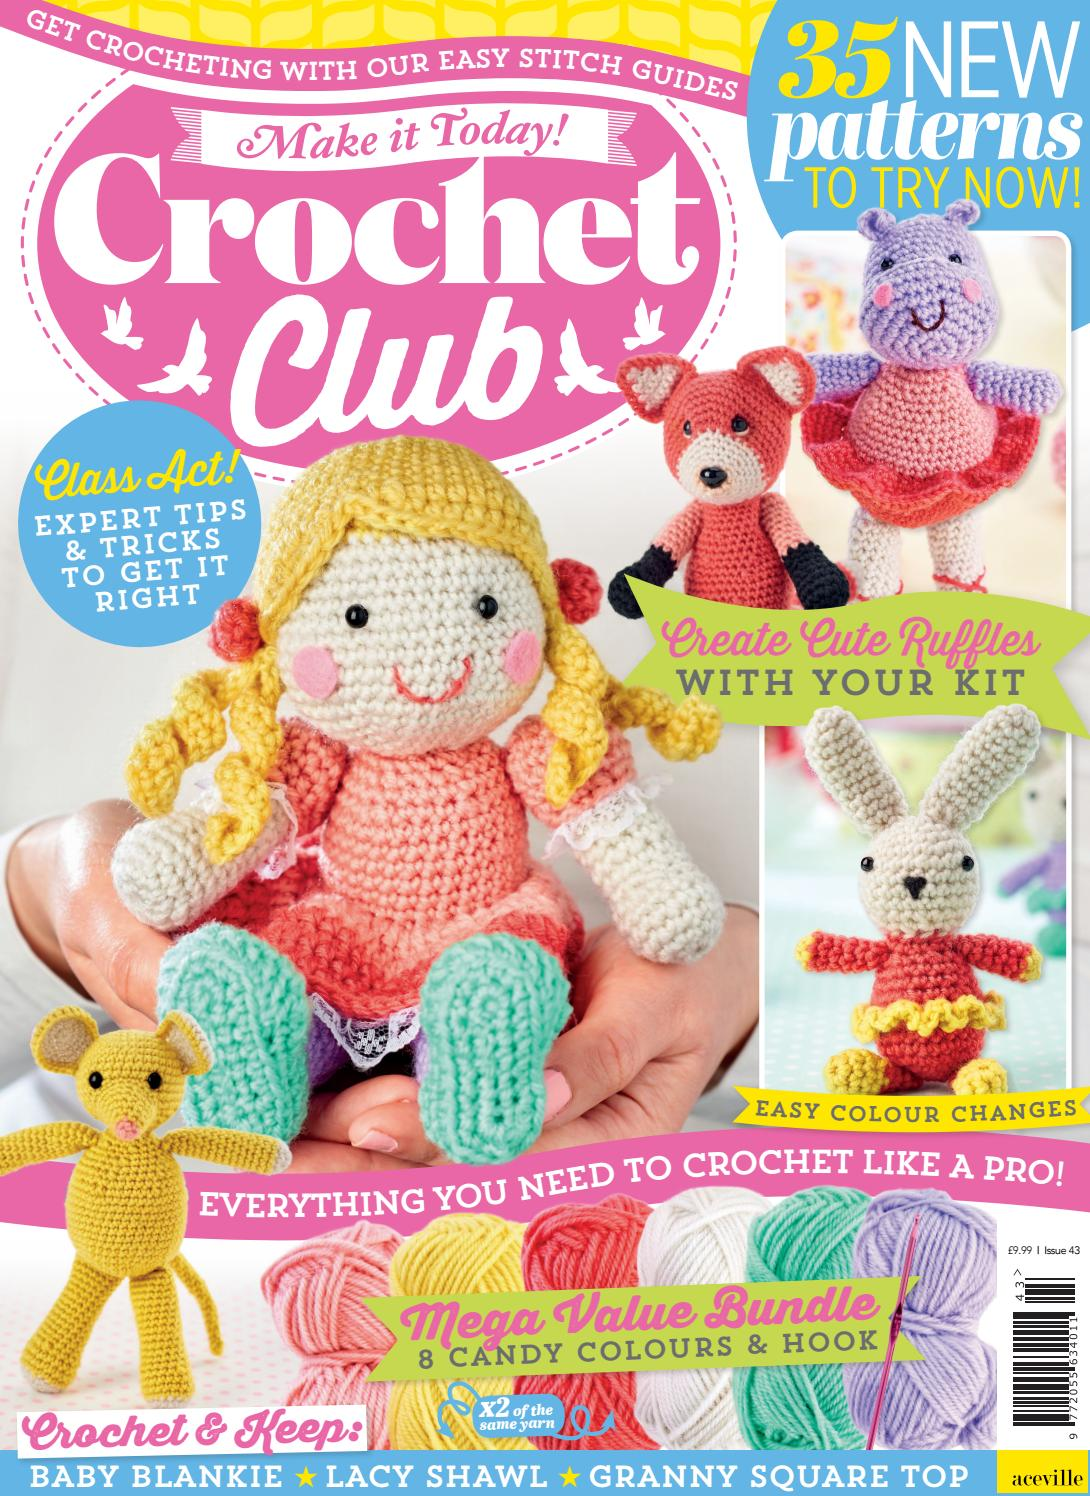 child friendly everything you need to get started Crochet kit for beginners